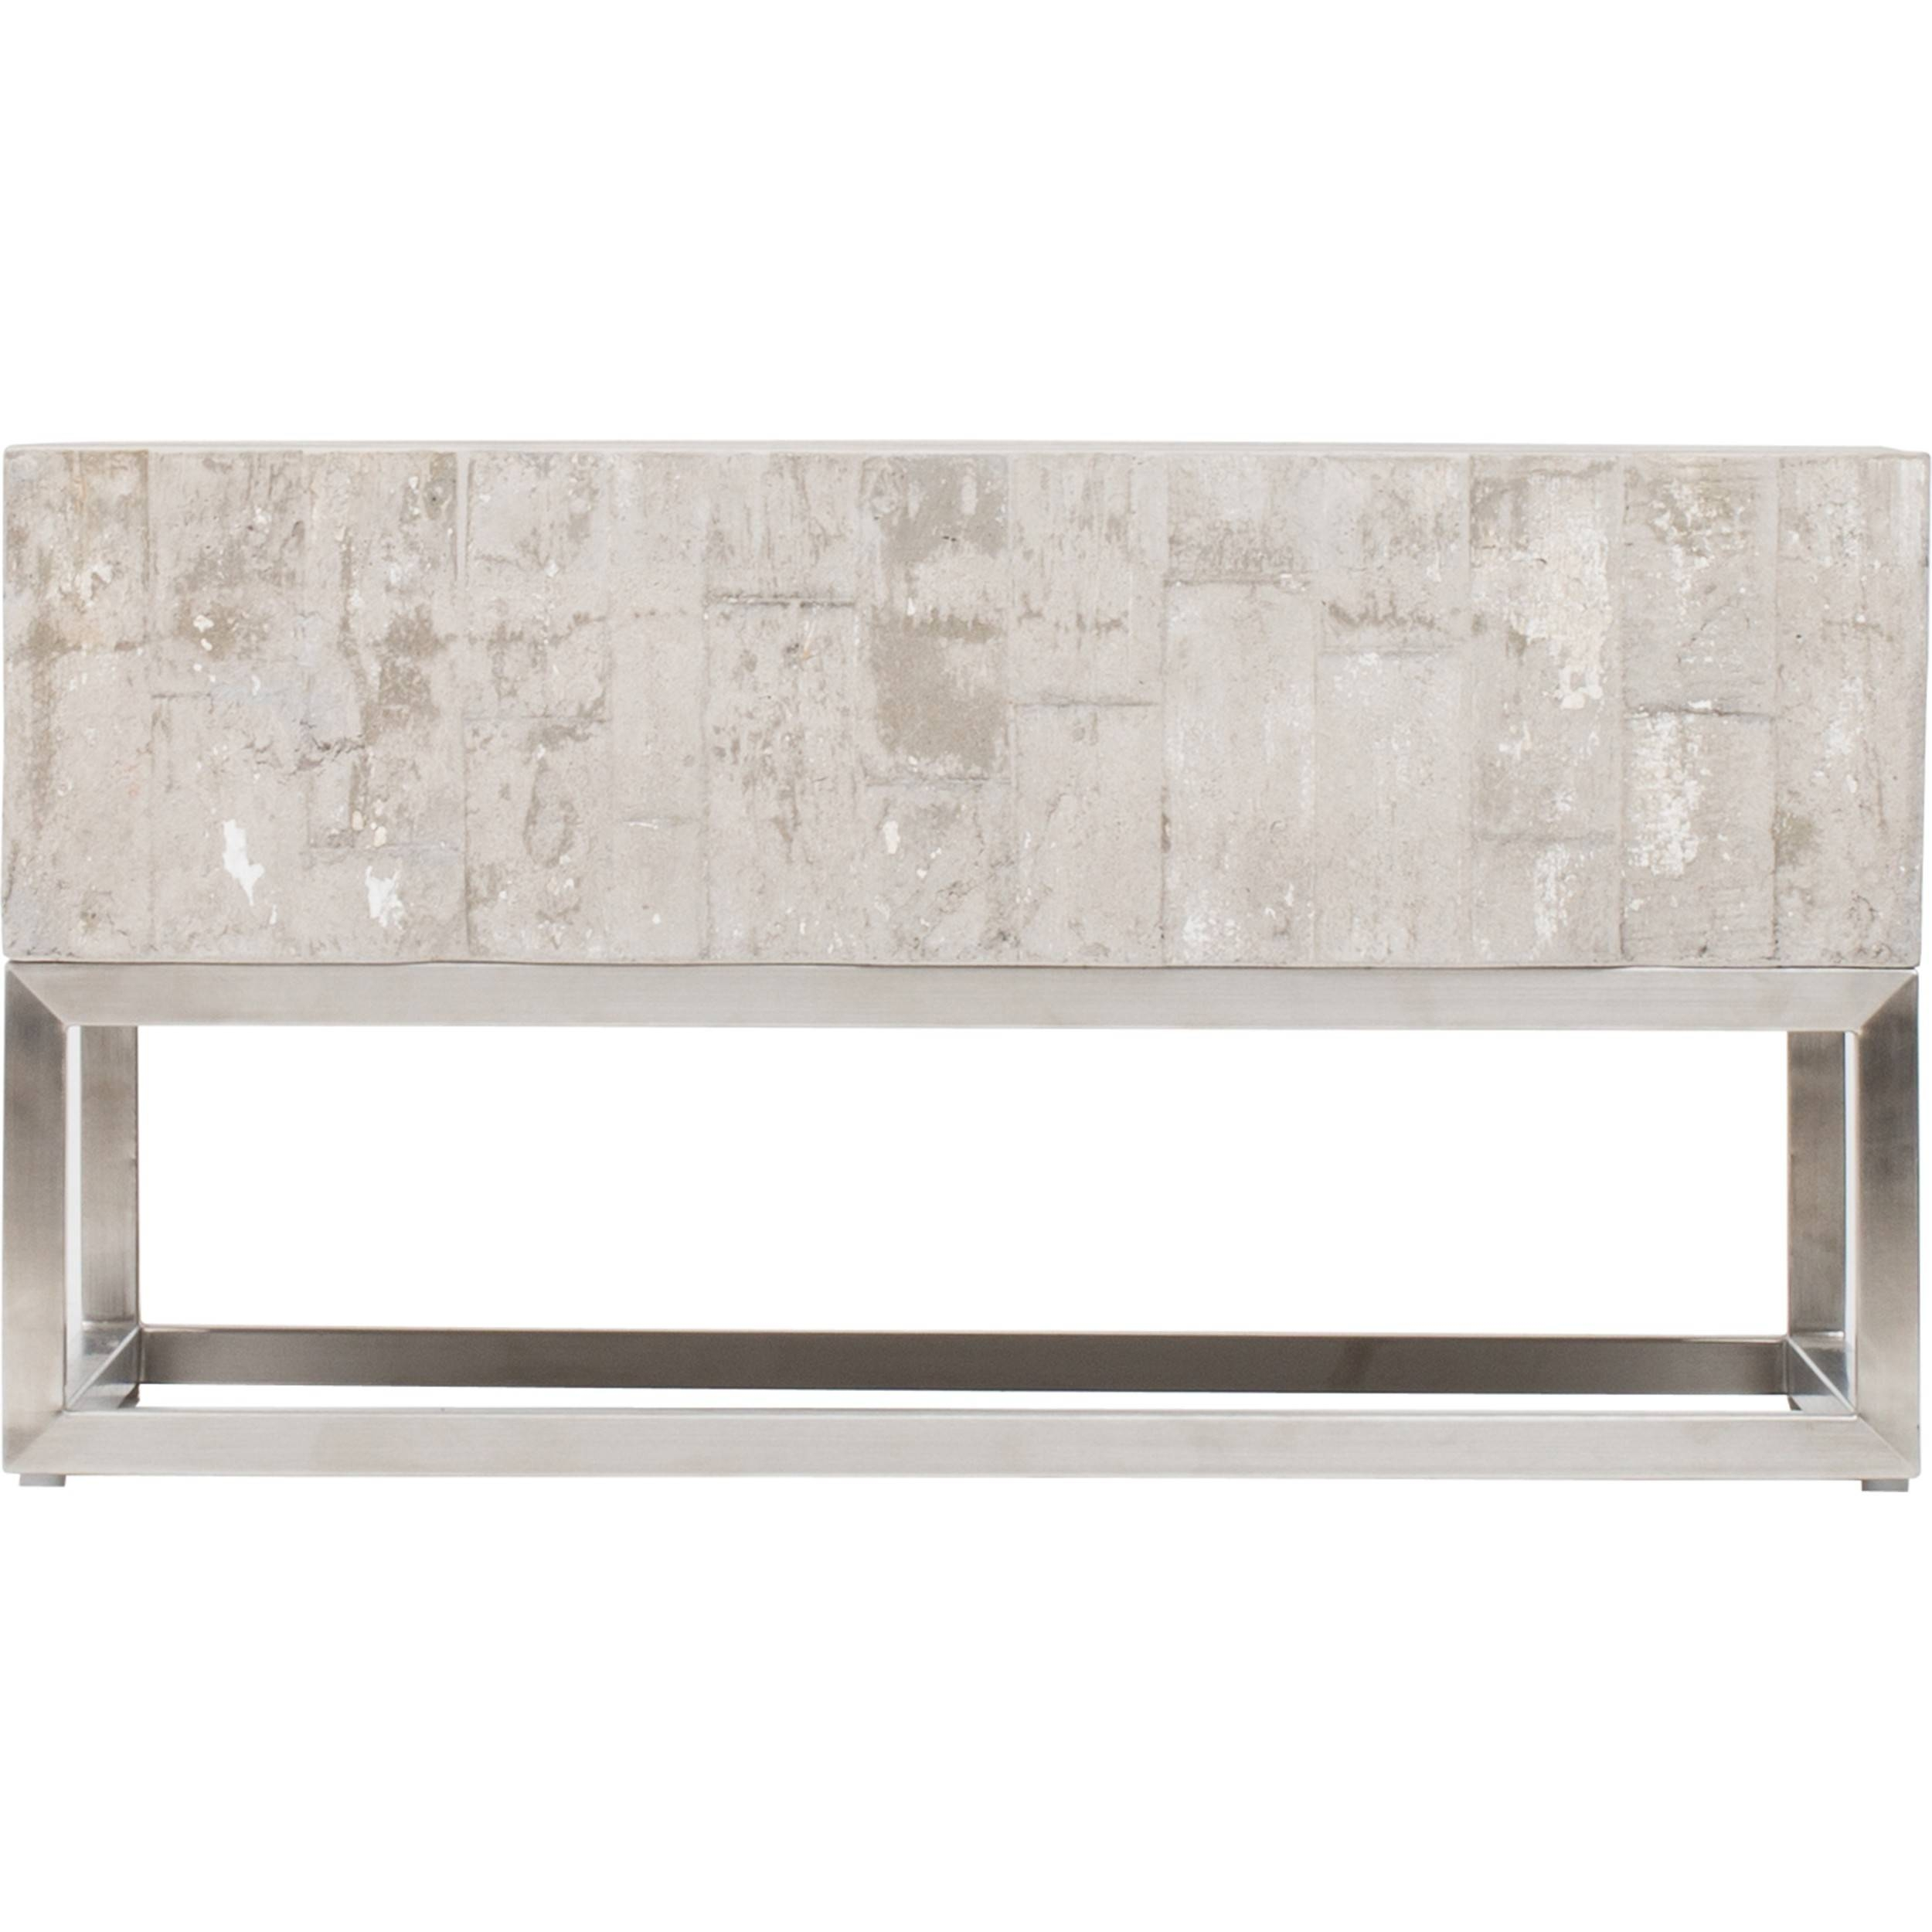 Concrete And Chrome Coffee Table – Coffee Tables – Accent Tables In Chrome Coffee Tables (View 7 of 30)